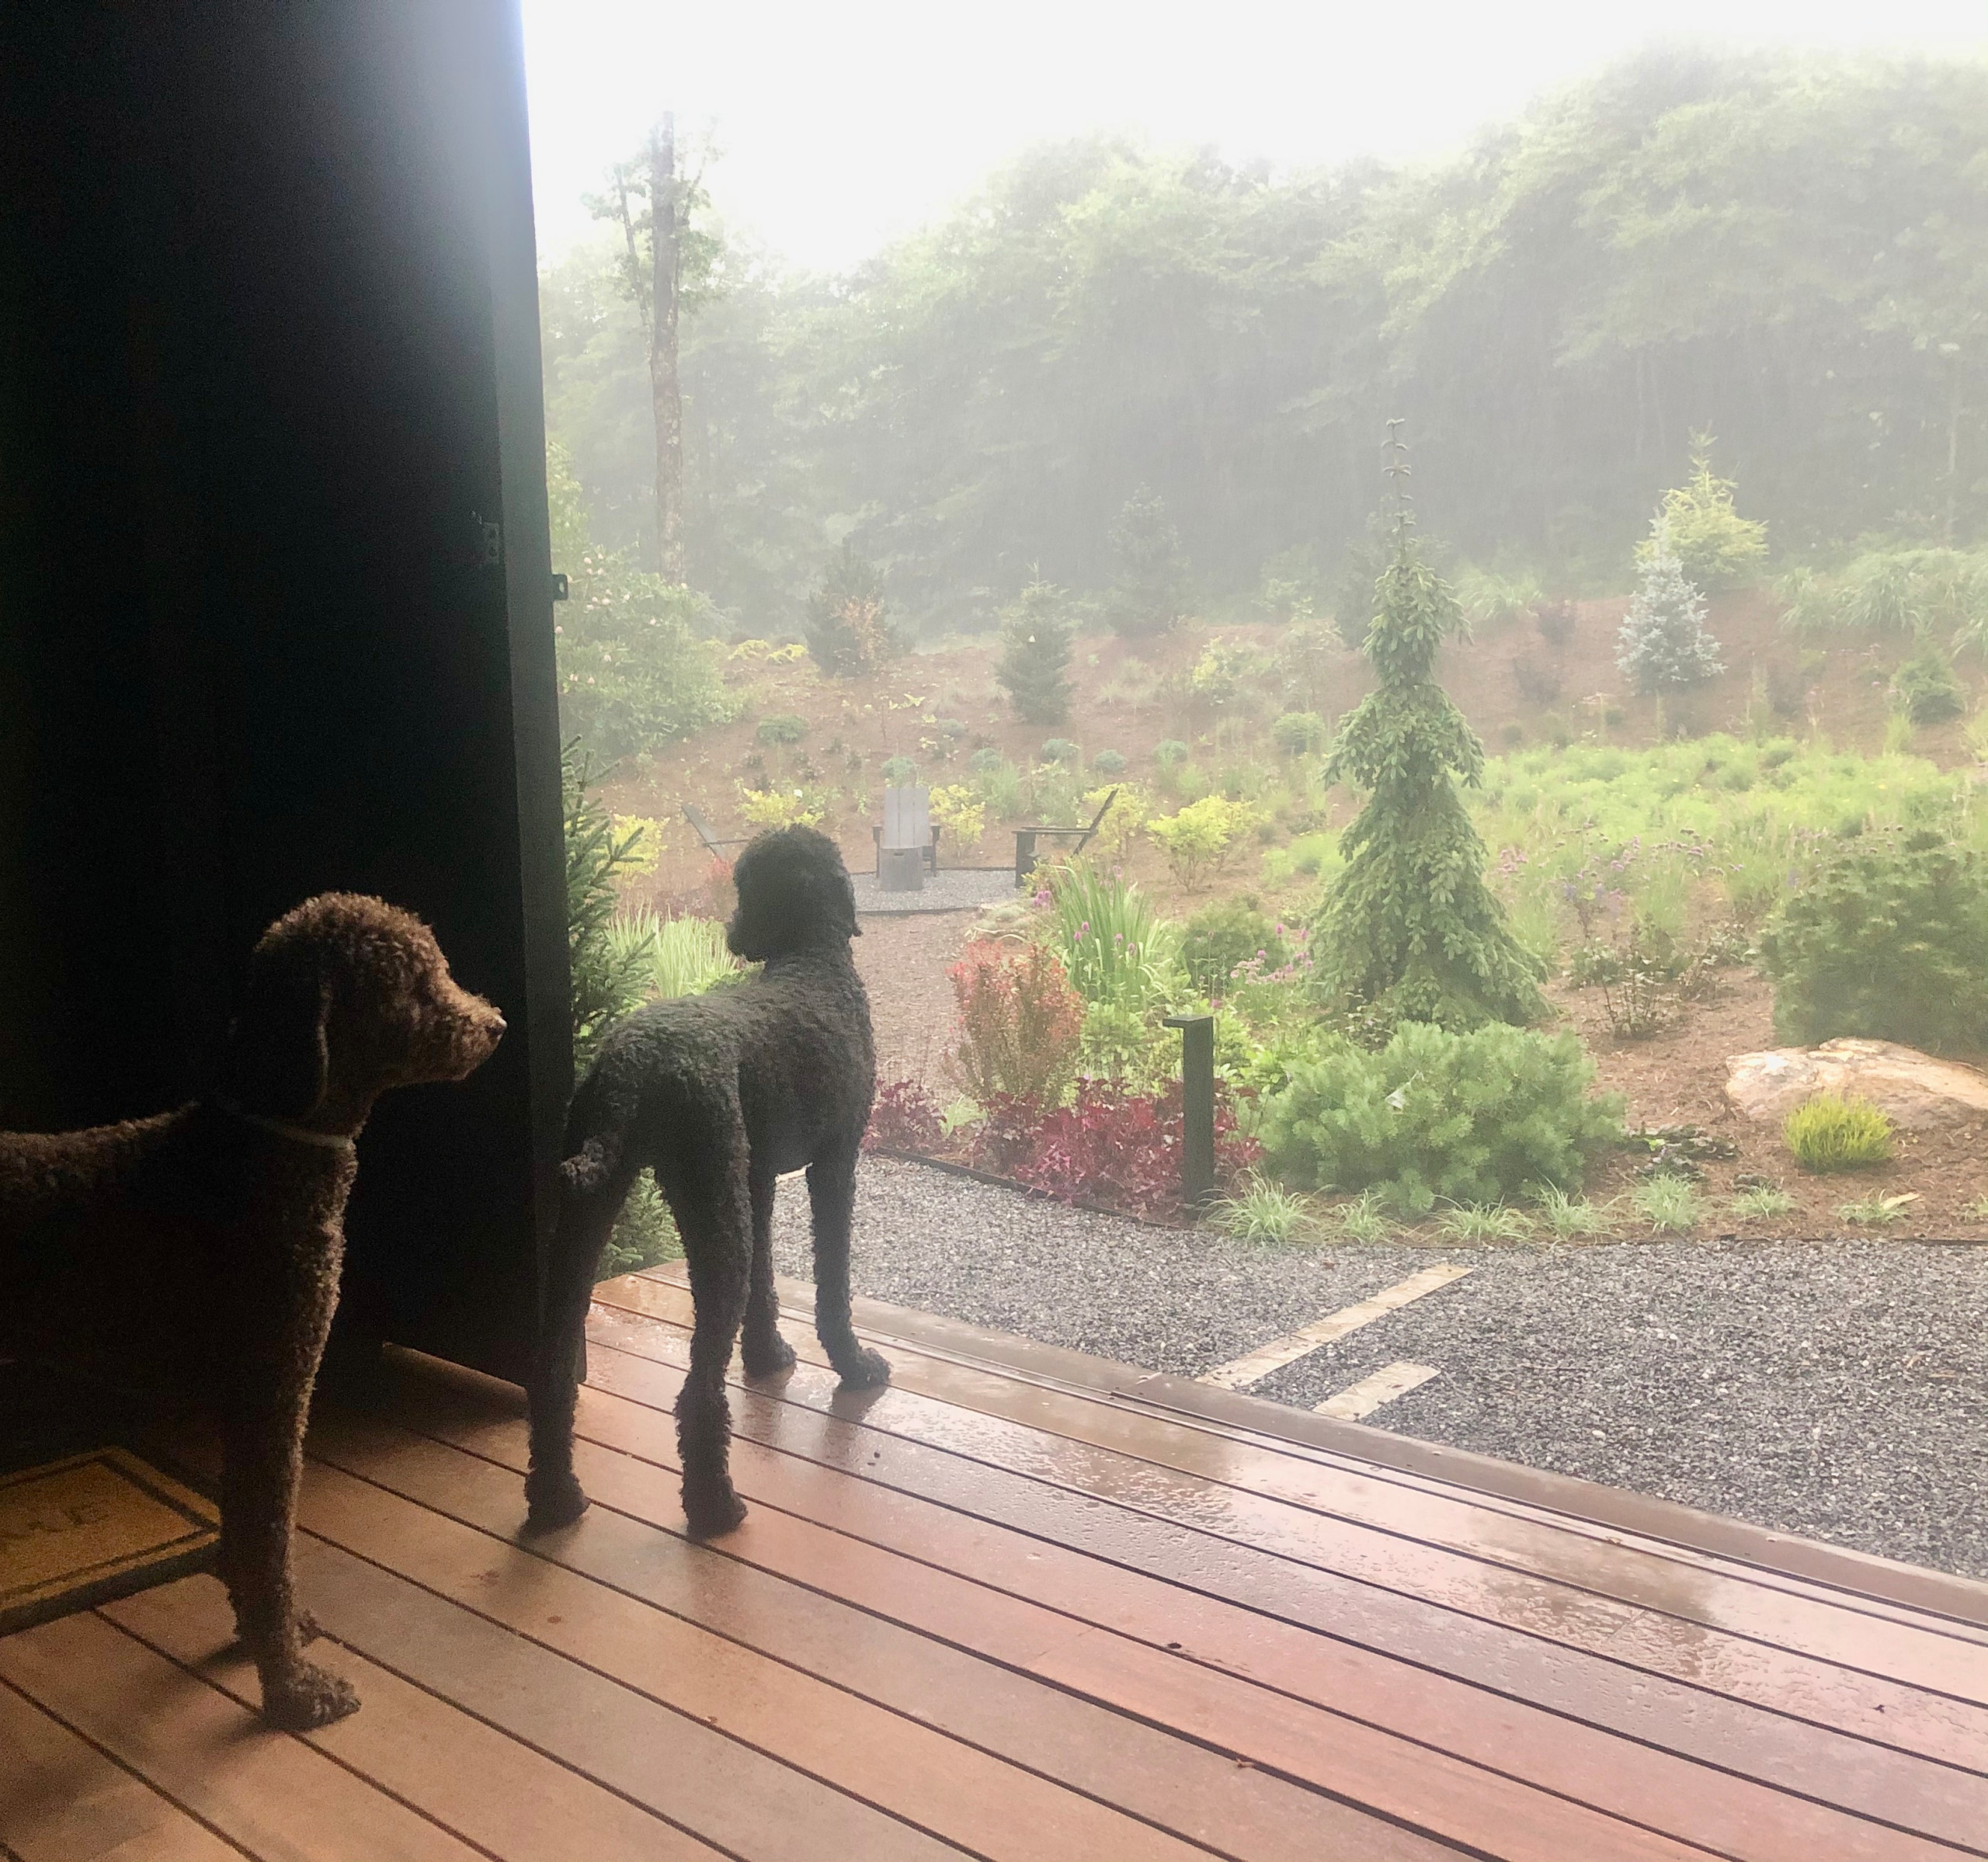 Amador and Sonoma watching the storm.